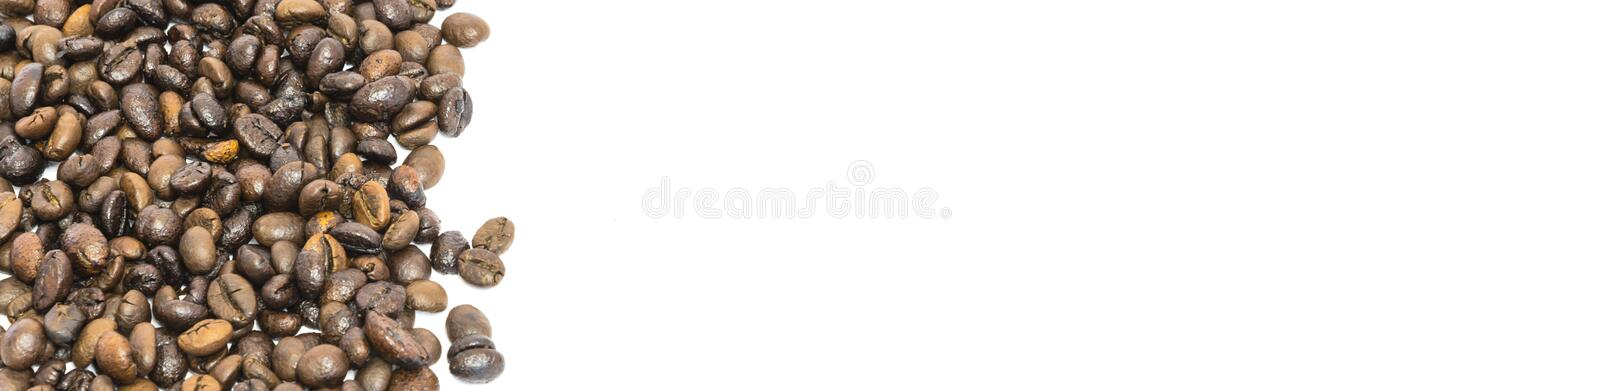 Pile of roasted Vietnamese robusta coffee beans isolated on white. Vertical banner style pile of roasted Vietnamese robusta coffee beans isolated on white stock photo